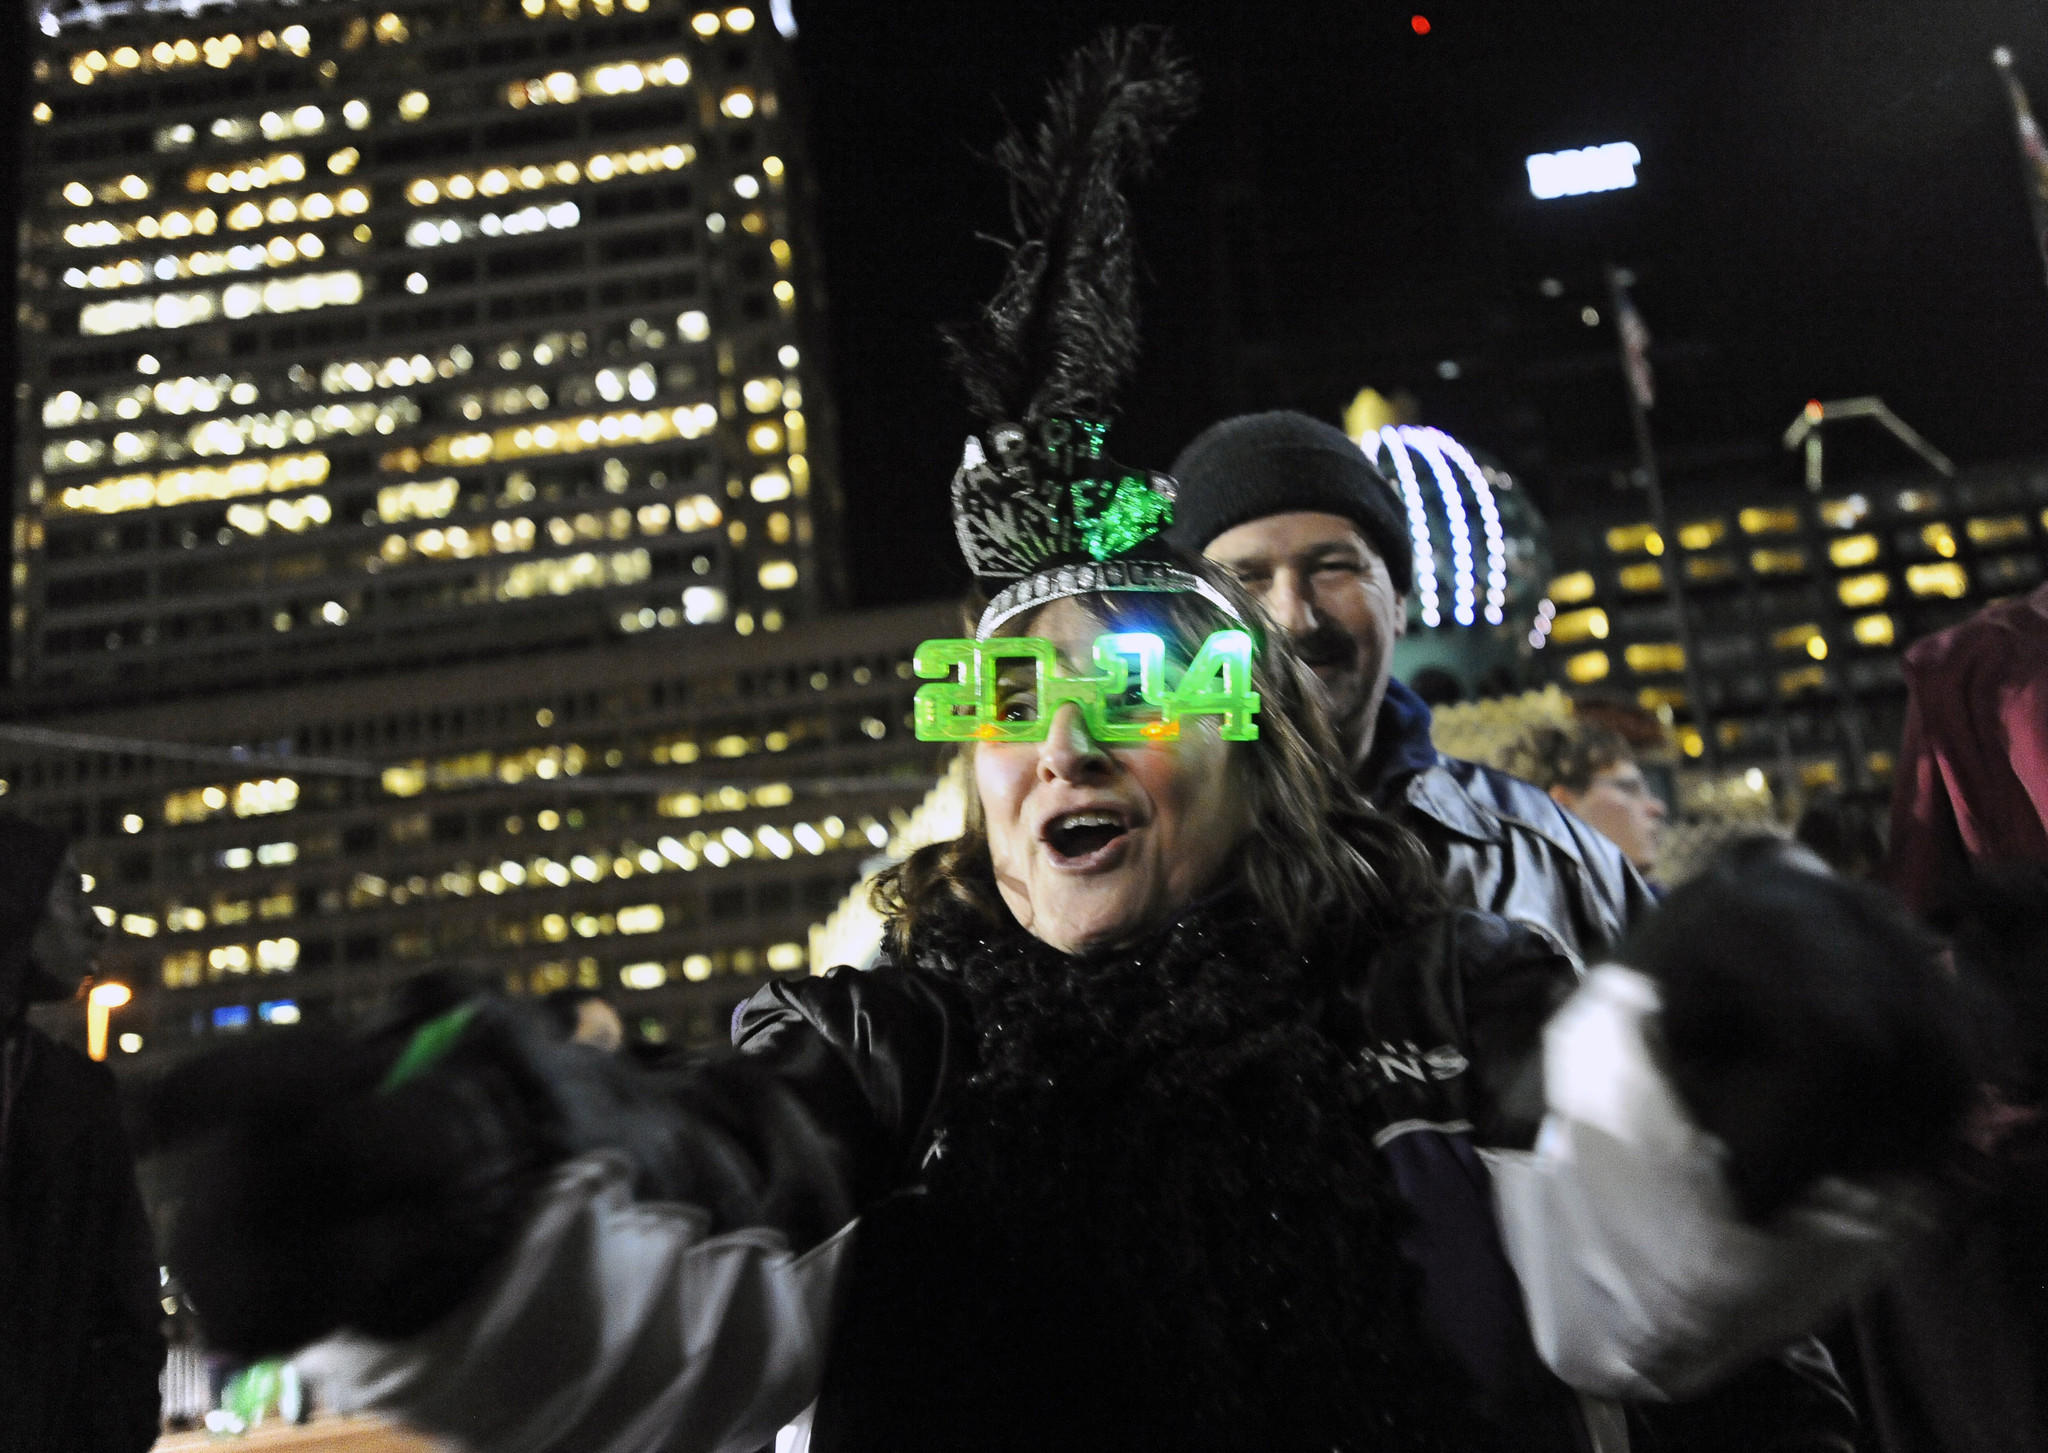 Rose Ettlin and husband John Kelly, of Baltimore dance to the music of Alter Ego during New Year's eve celebration at the Inner Harbor to welcome in 2014.